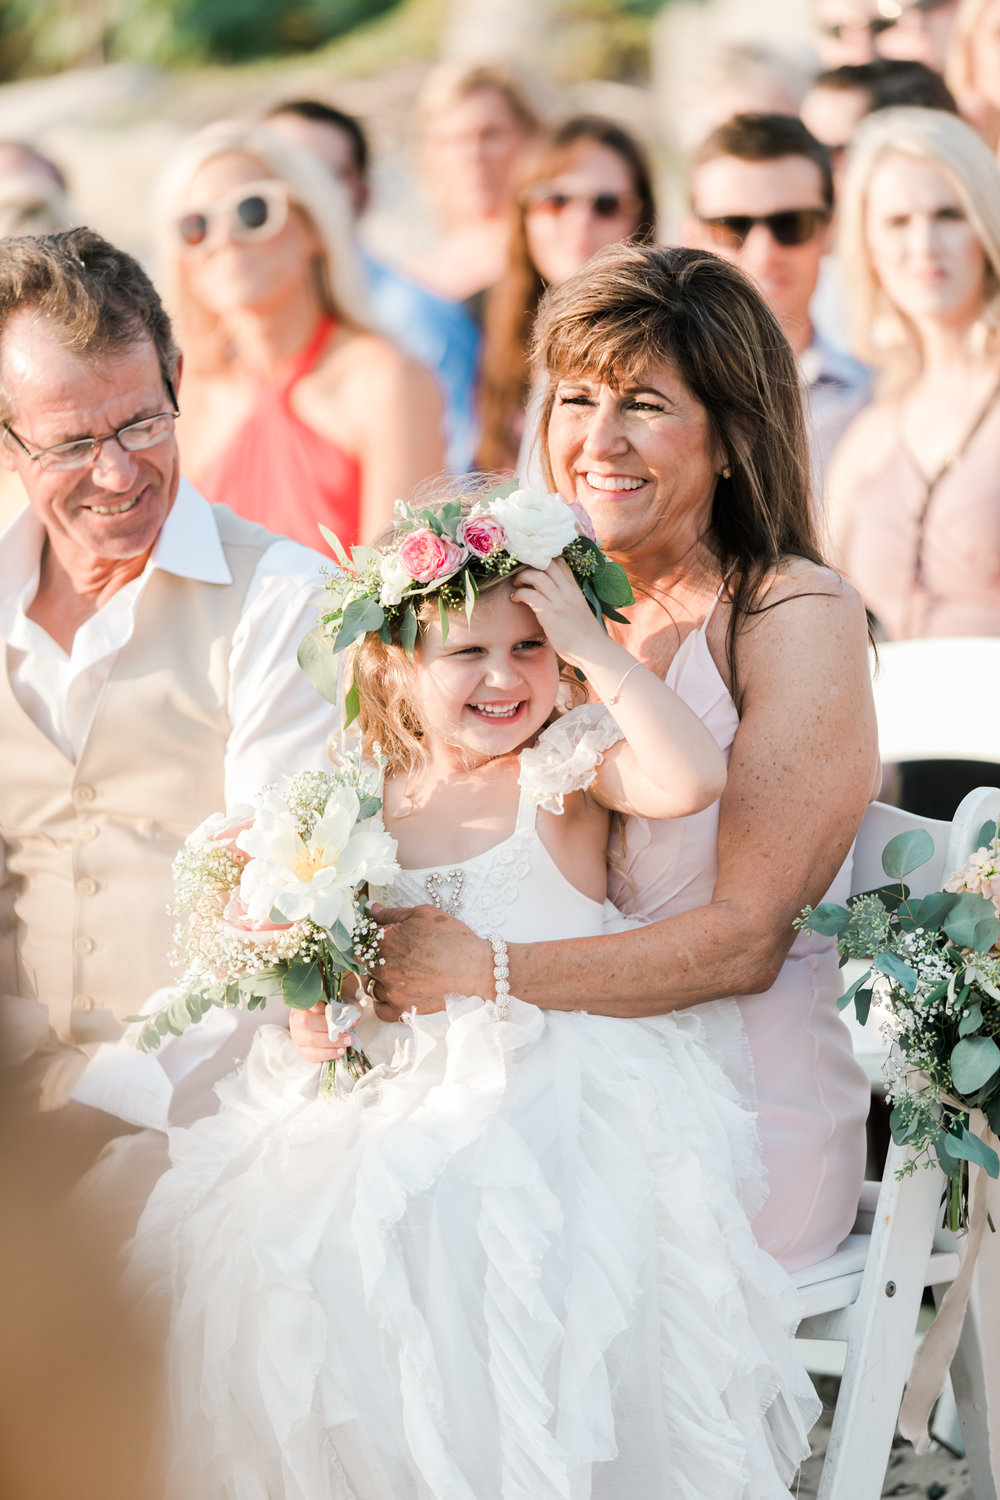 Destination Beach Wedding_Valorie Darling Photography-2267.jpg